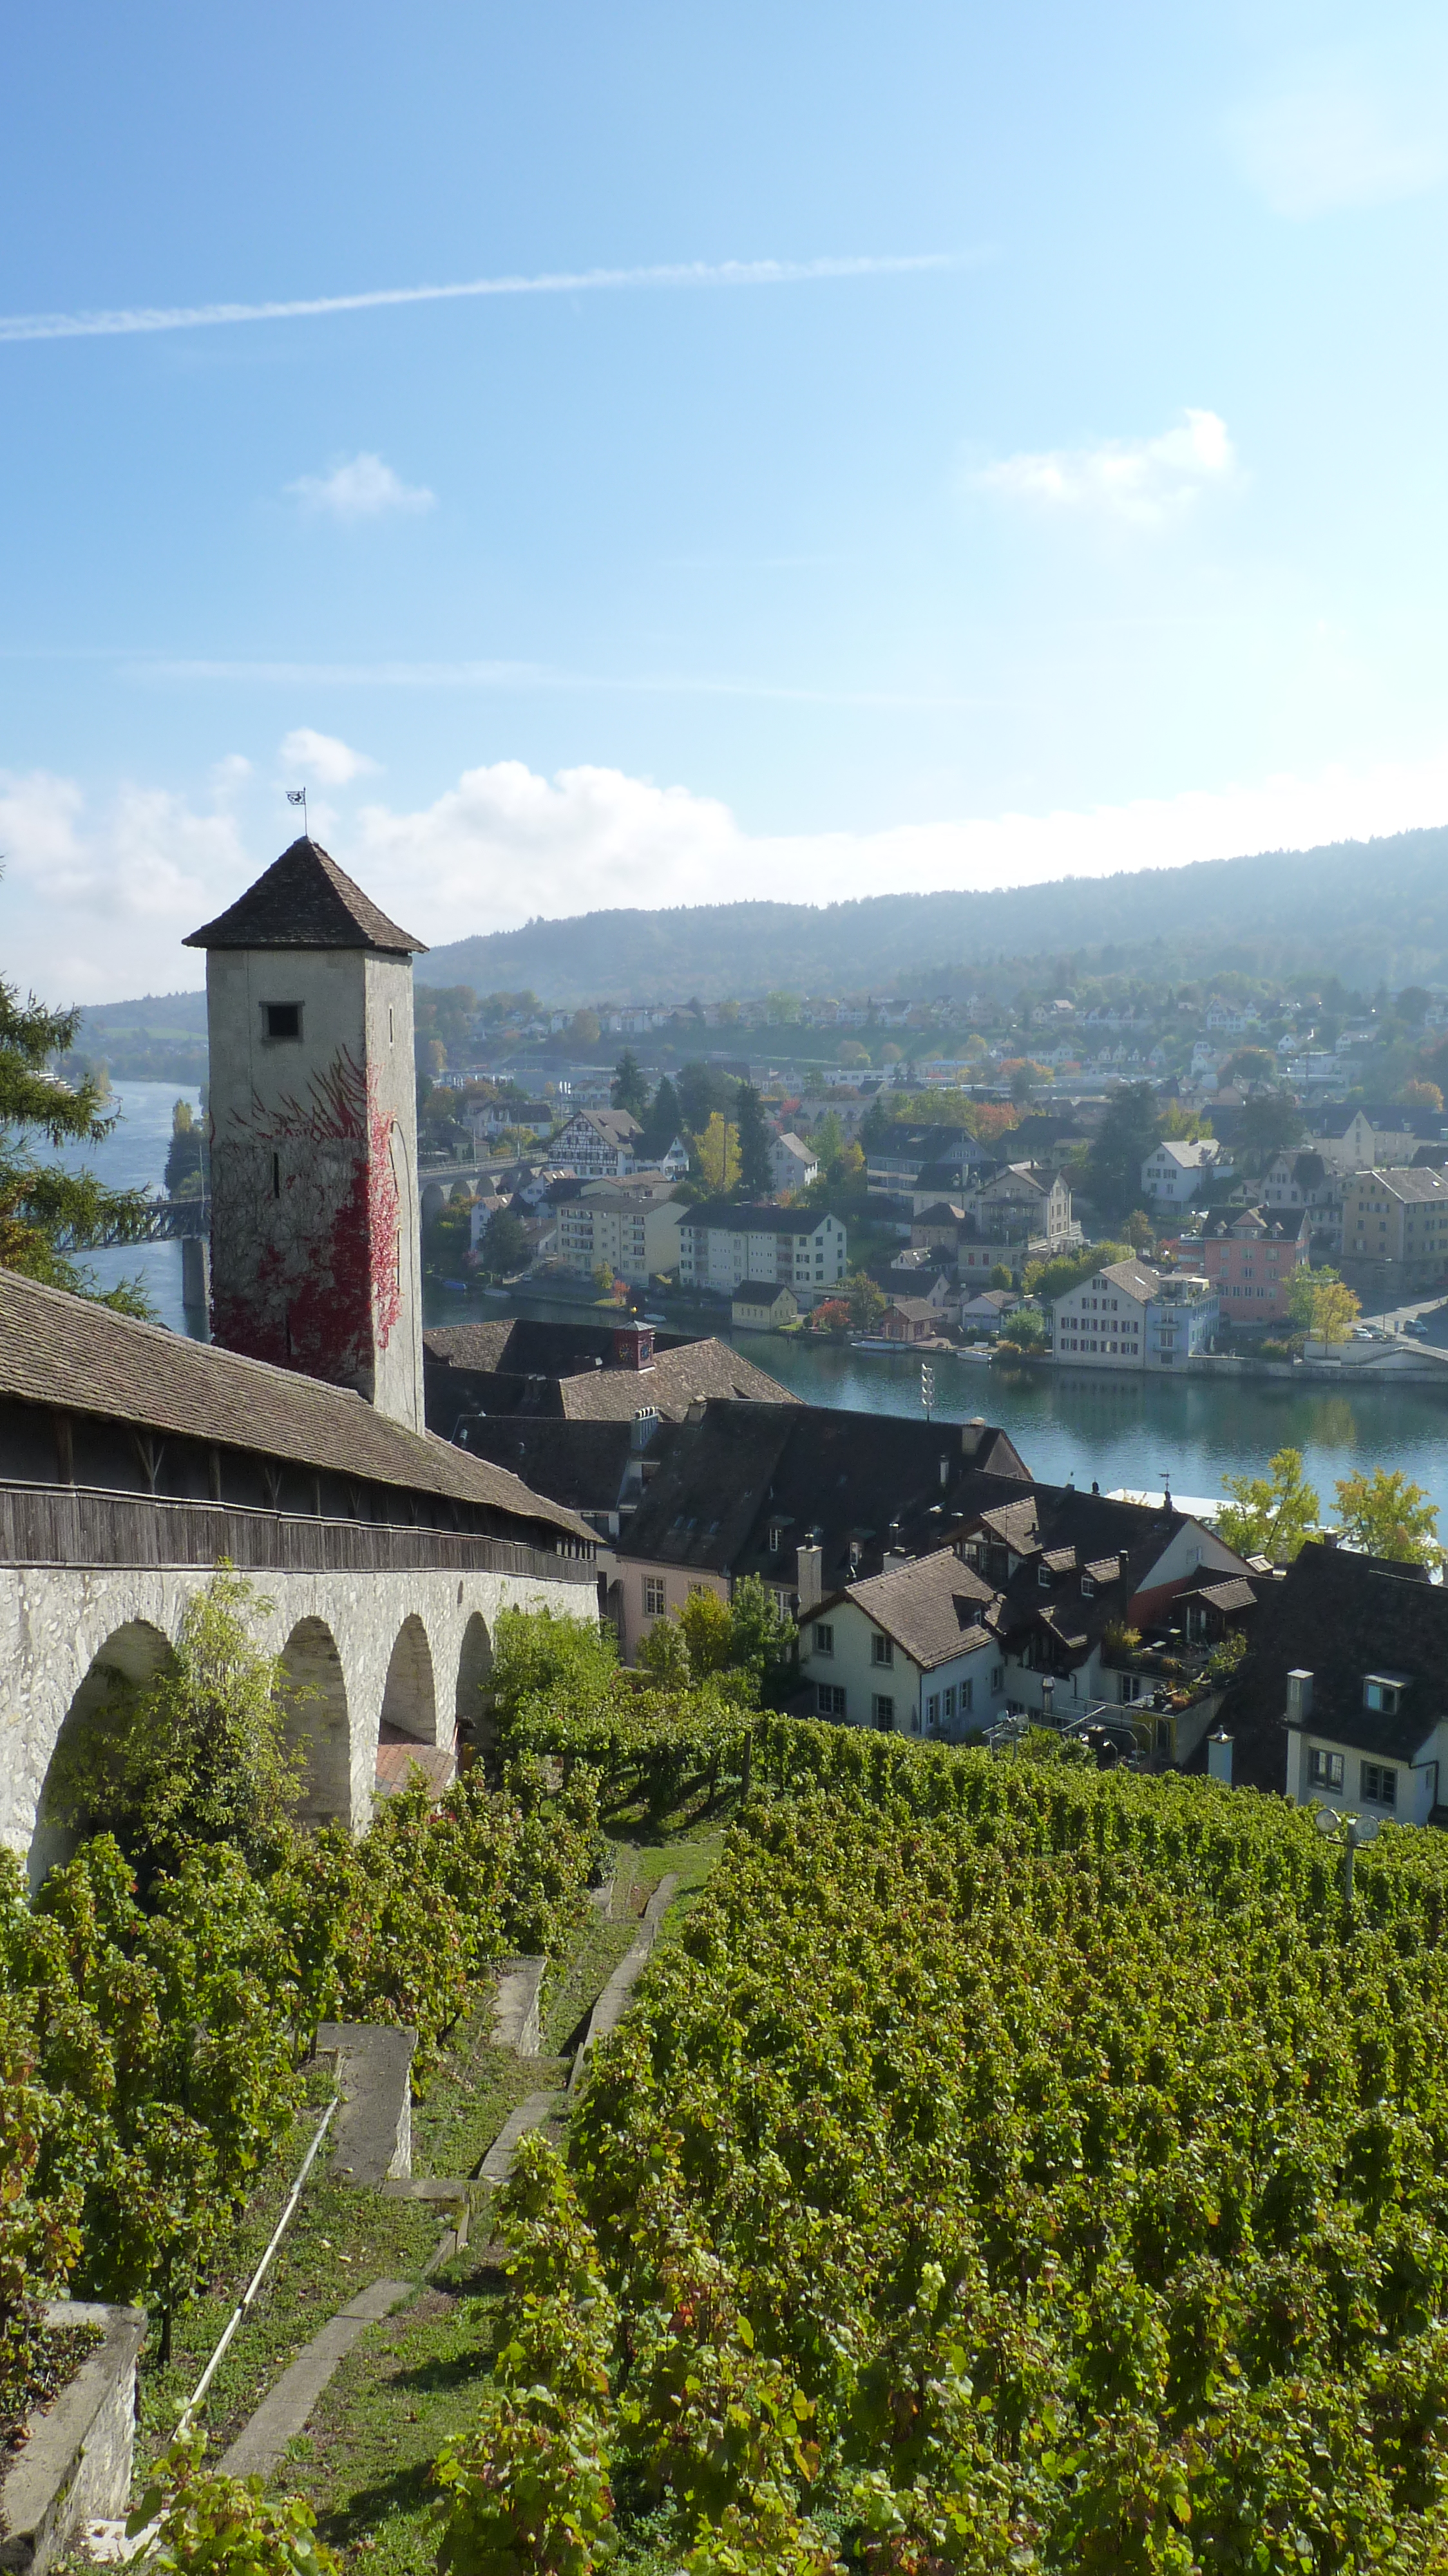 View from Schaffhausen's castle on the vineyards surrounding it